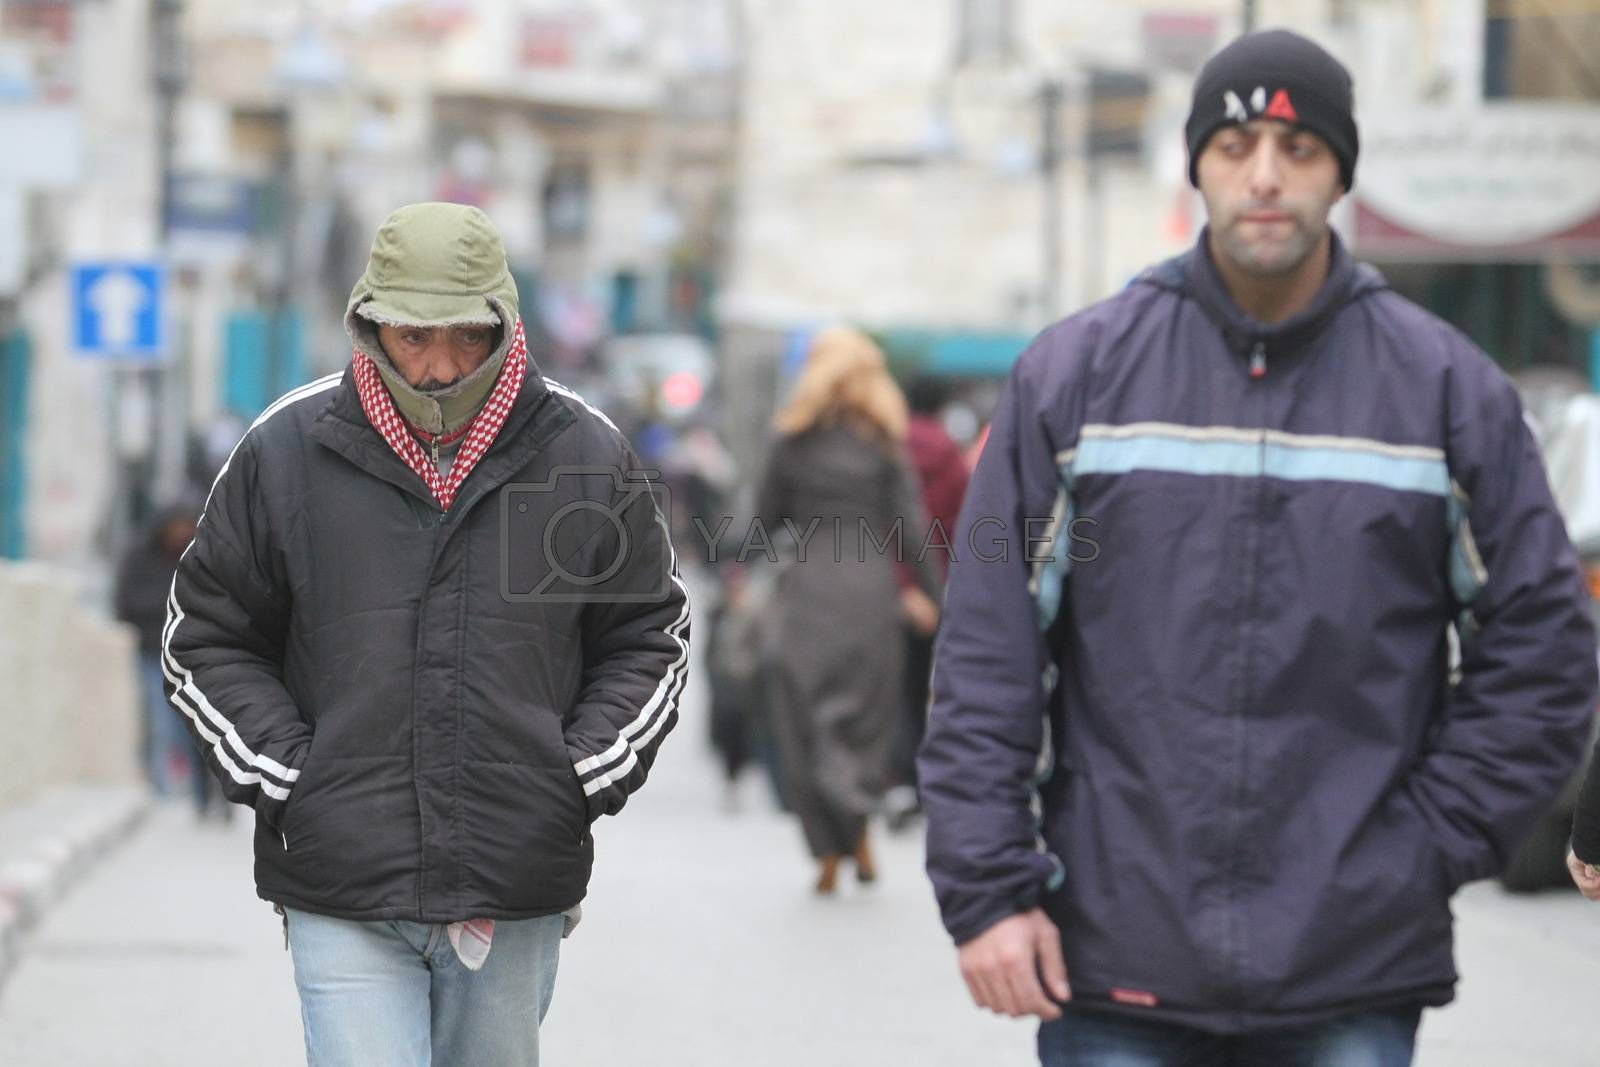 WEST BANK, Bethlehem: Men walk on a street, in the Palestinian city of Bethlehem, on January 19, 2016, as a sandstorm hits Israel and West Bank, causing air pollution. A low-pressure system over the Mediterranean has driven the dust northeast from Egypt and the Sinai Peninsula.